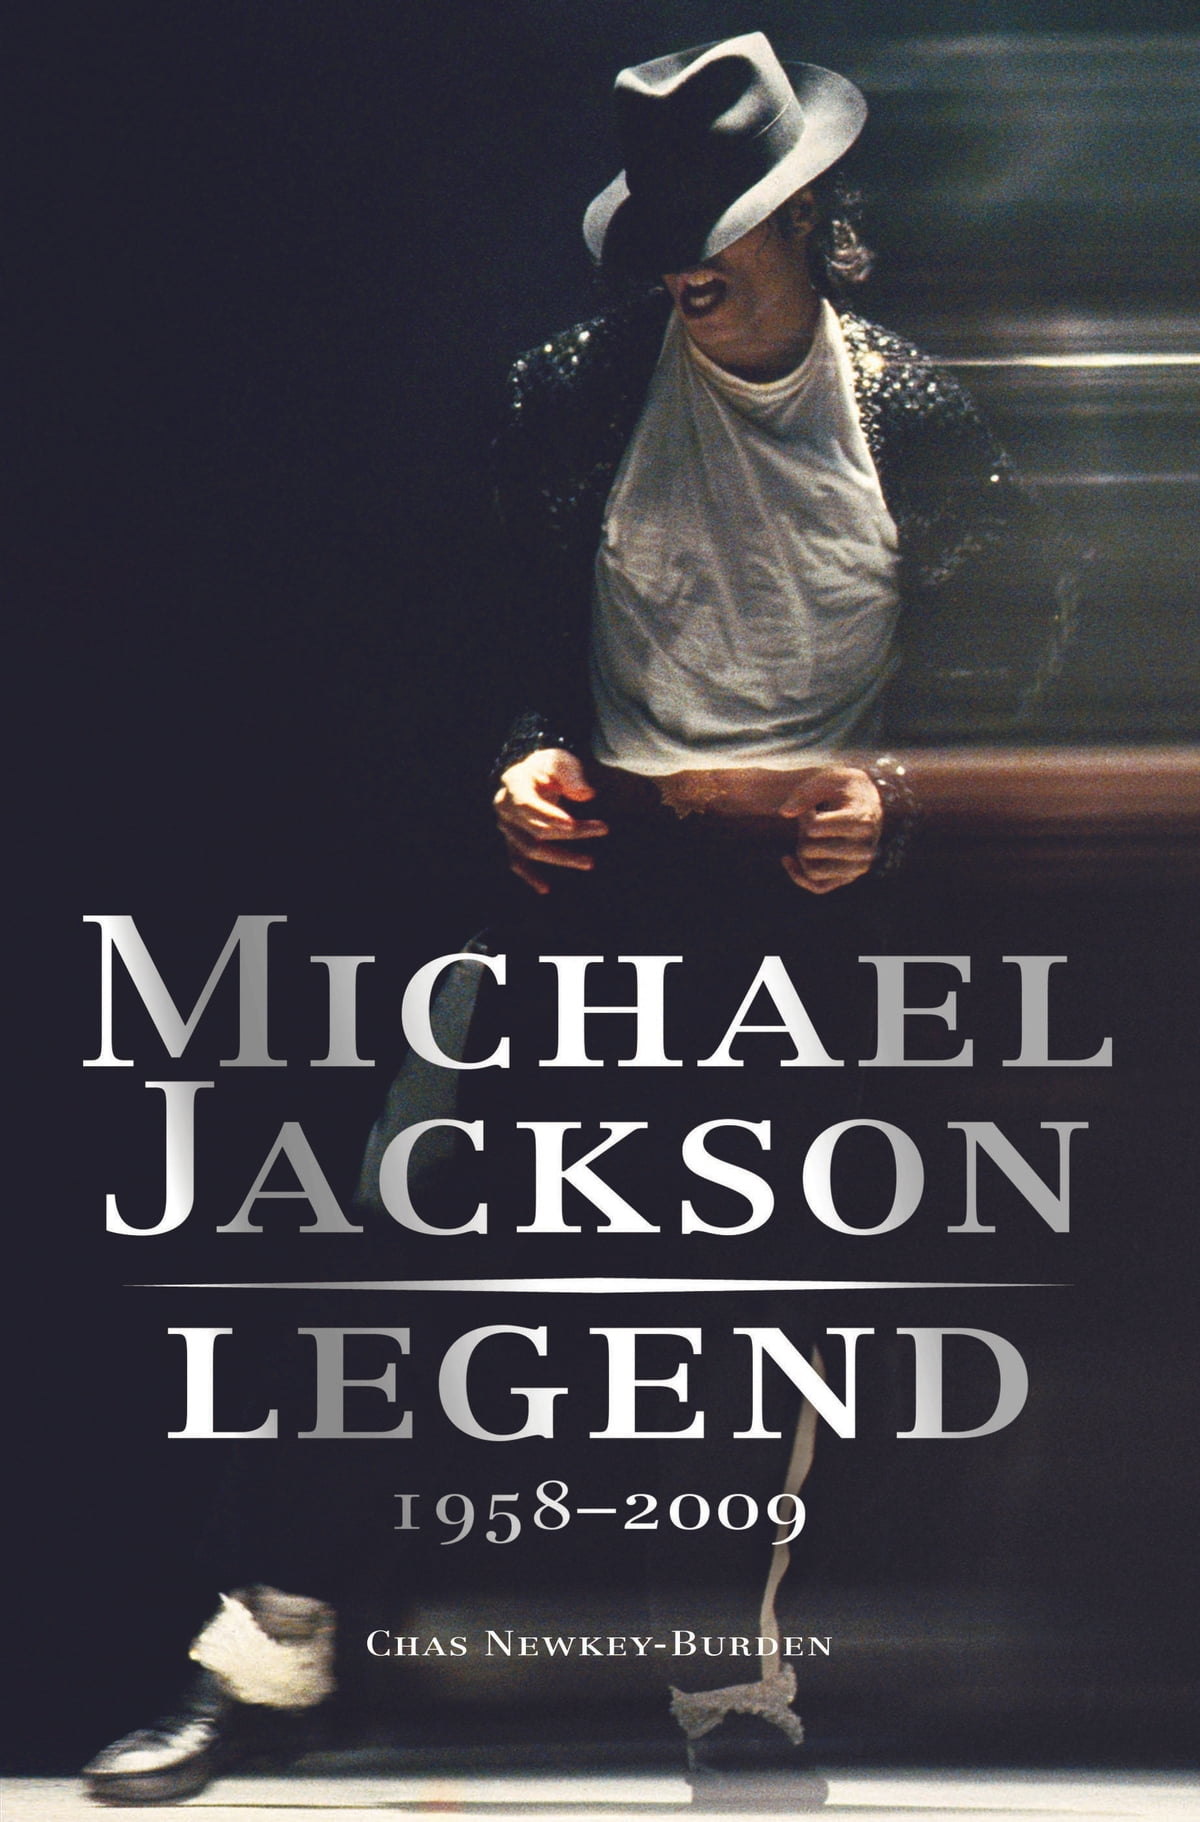 Michael Jackson Legend 1958 2009 Ebook By Chas Newkey border=